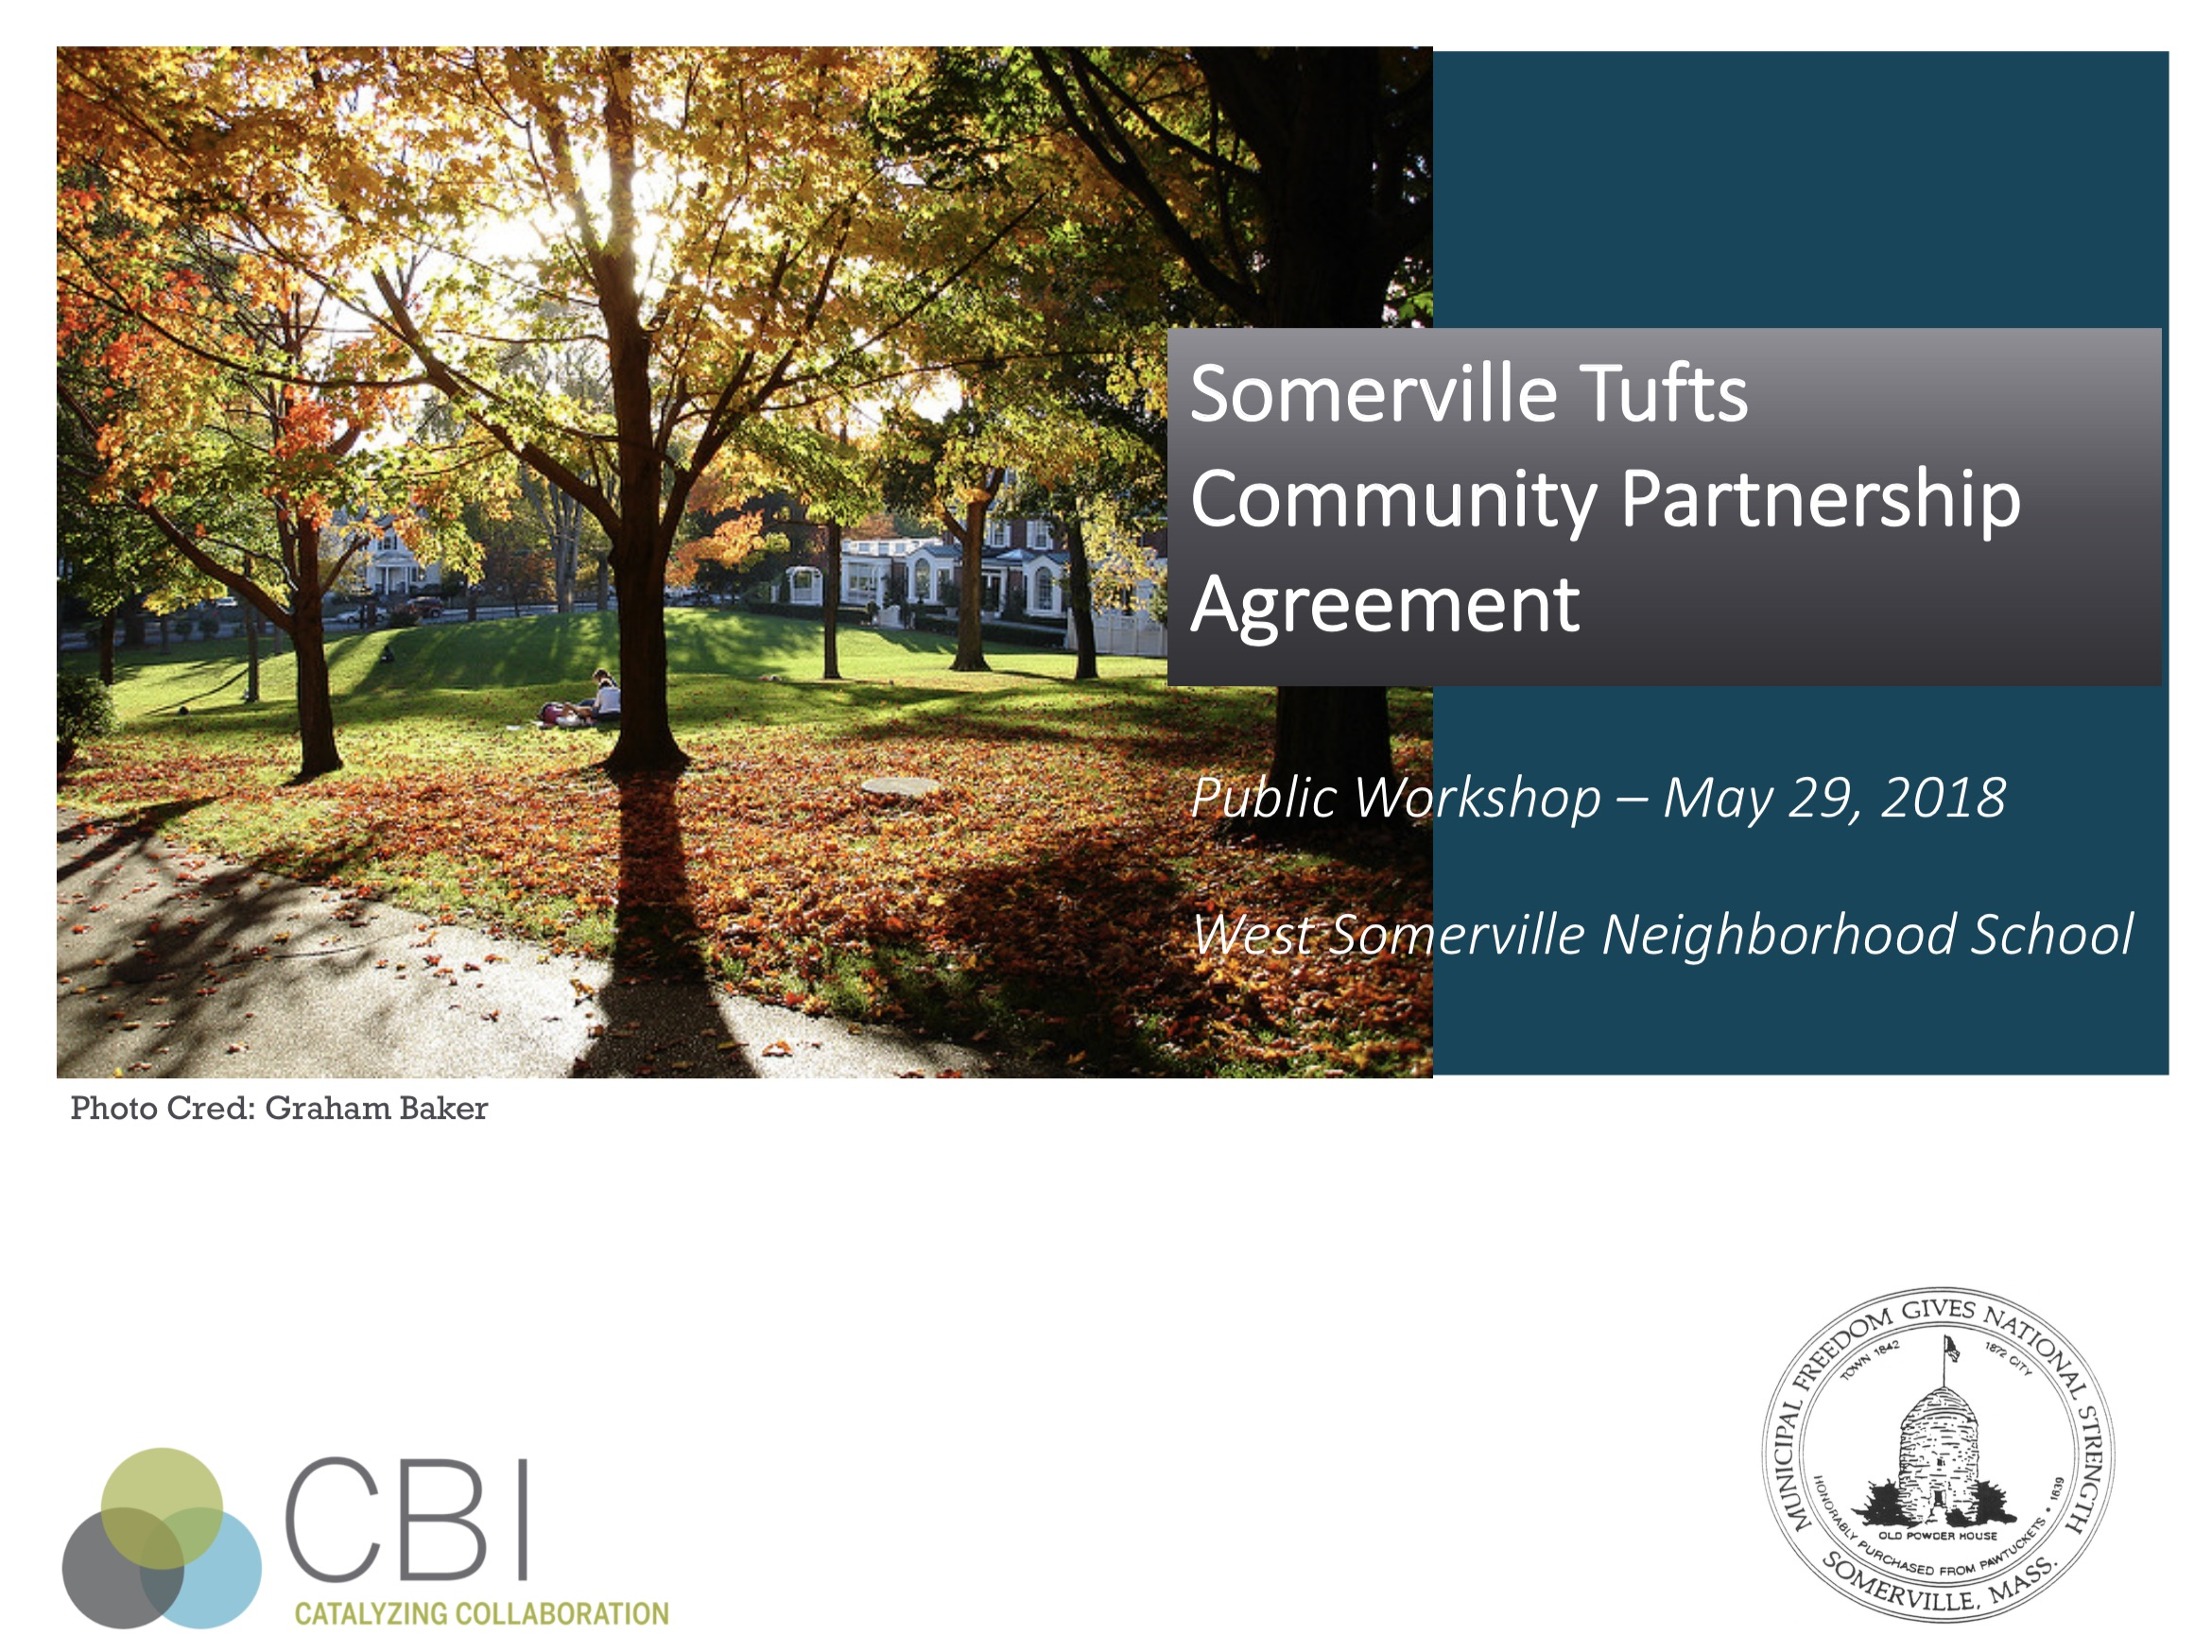 PDF preview links to Somerville-Tufts Partnership Agreement meeting presentation